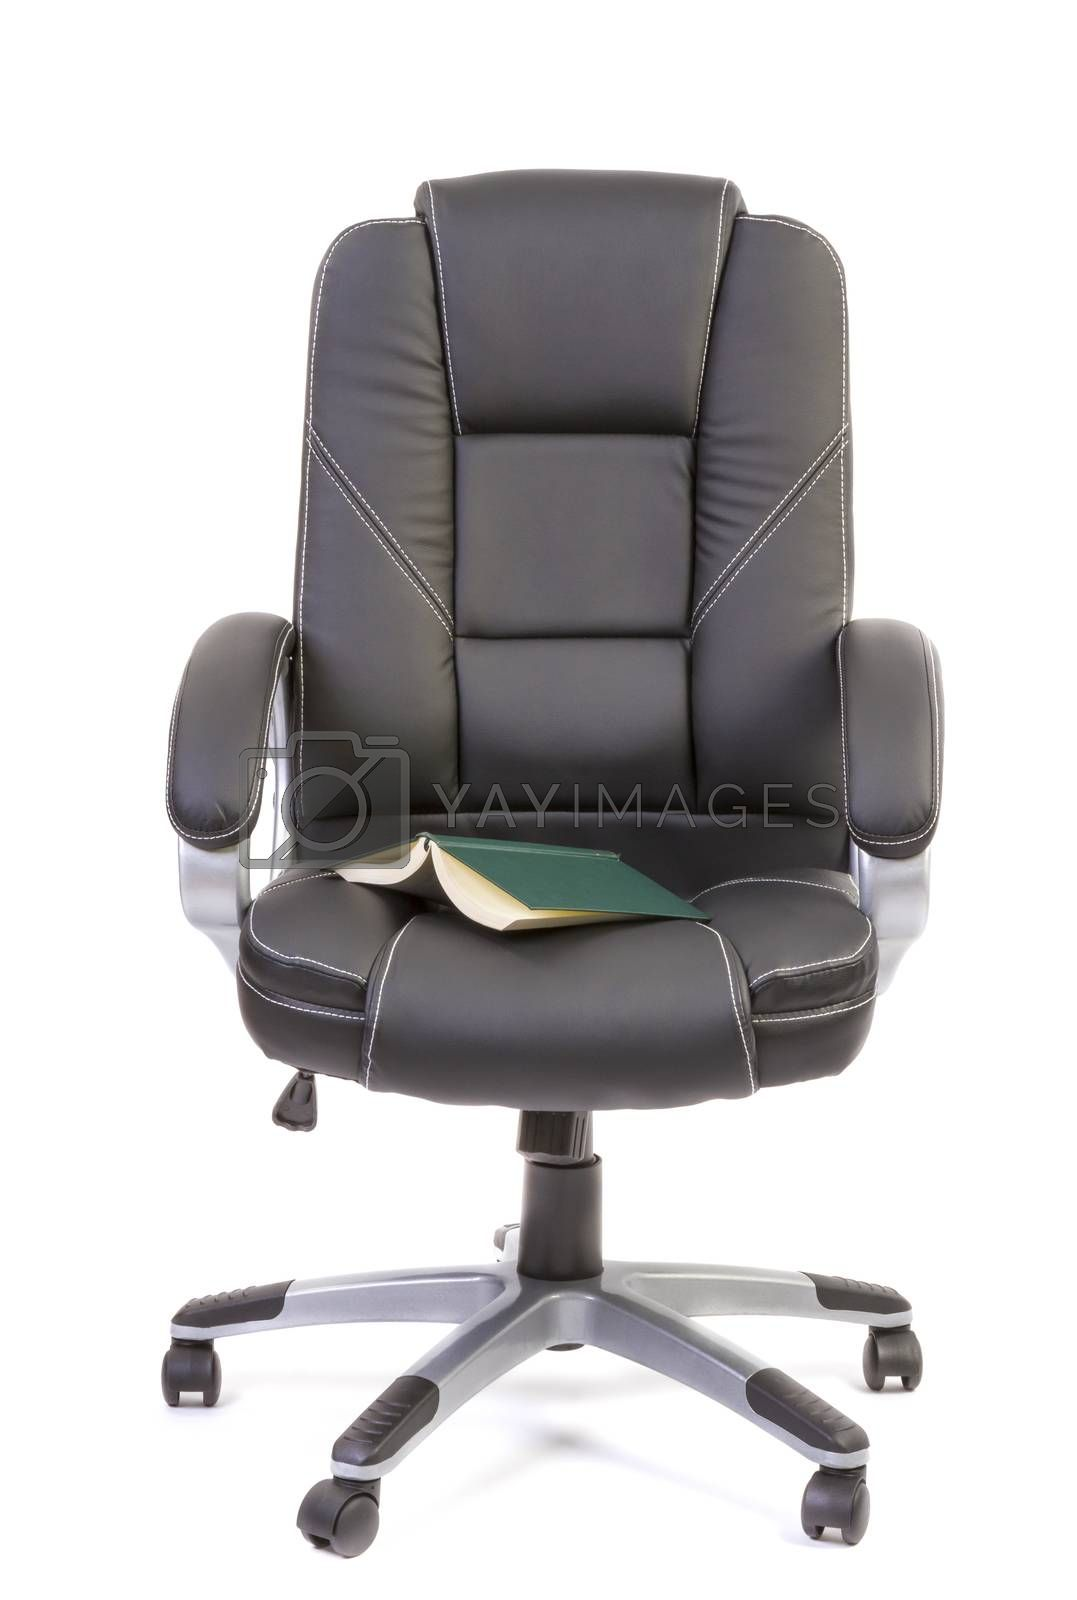 Book on office chair by manaemedia